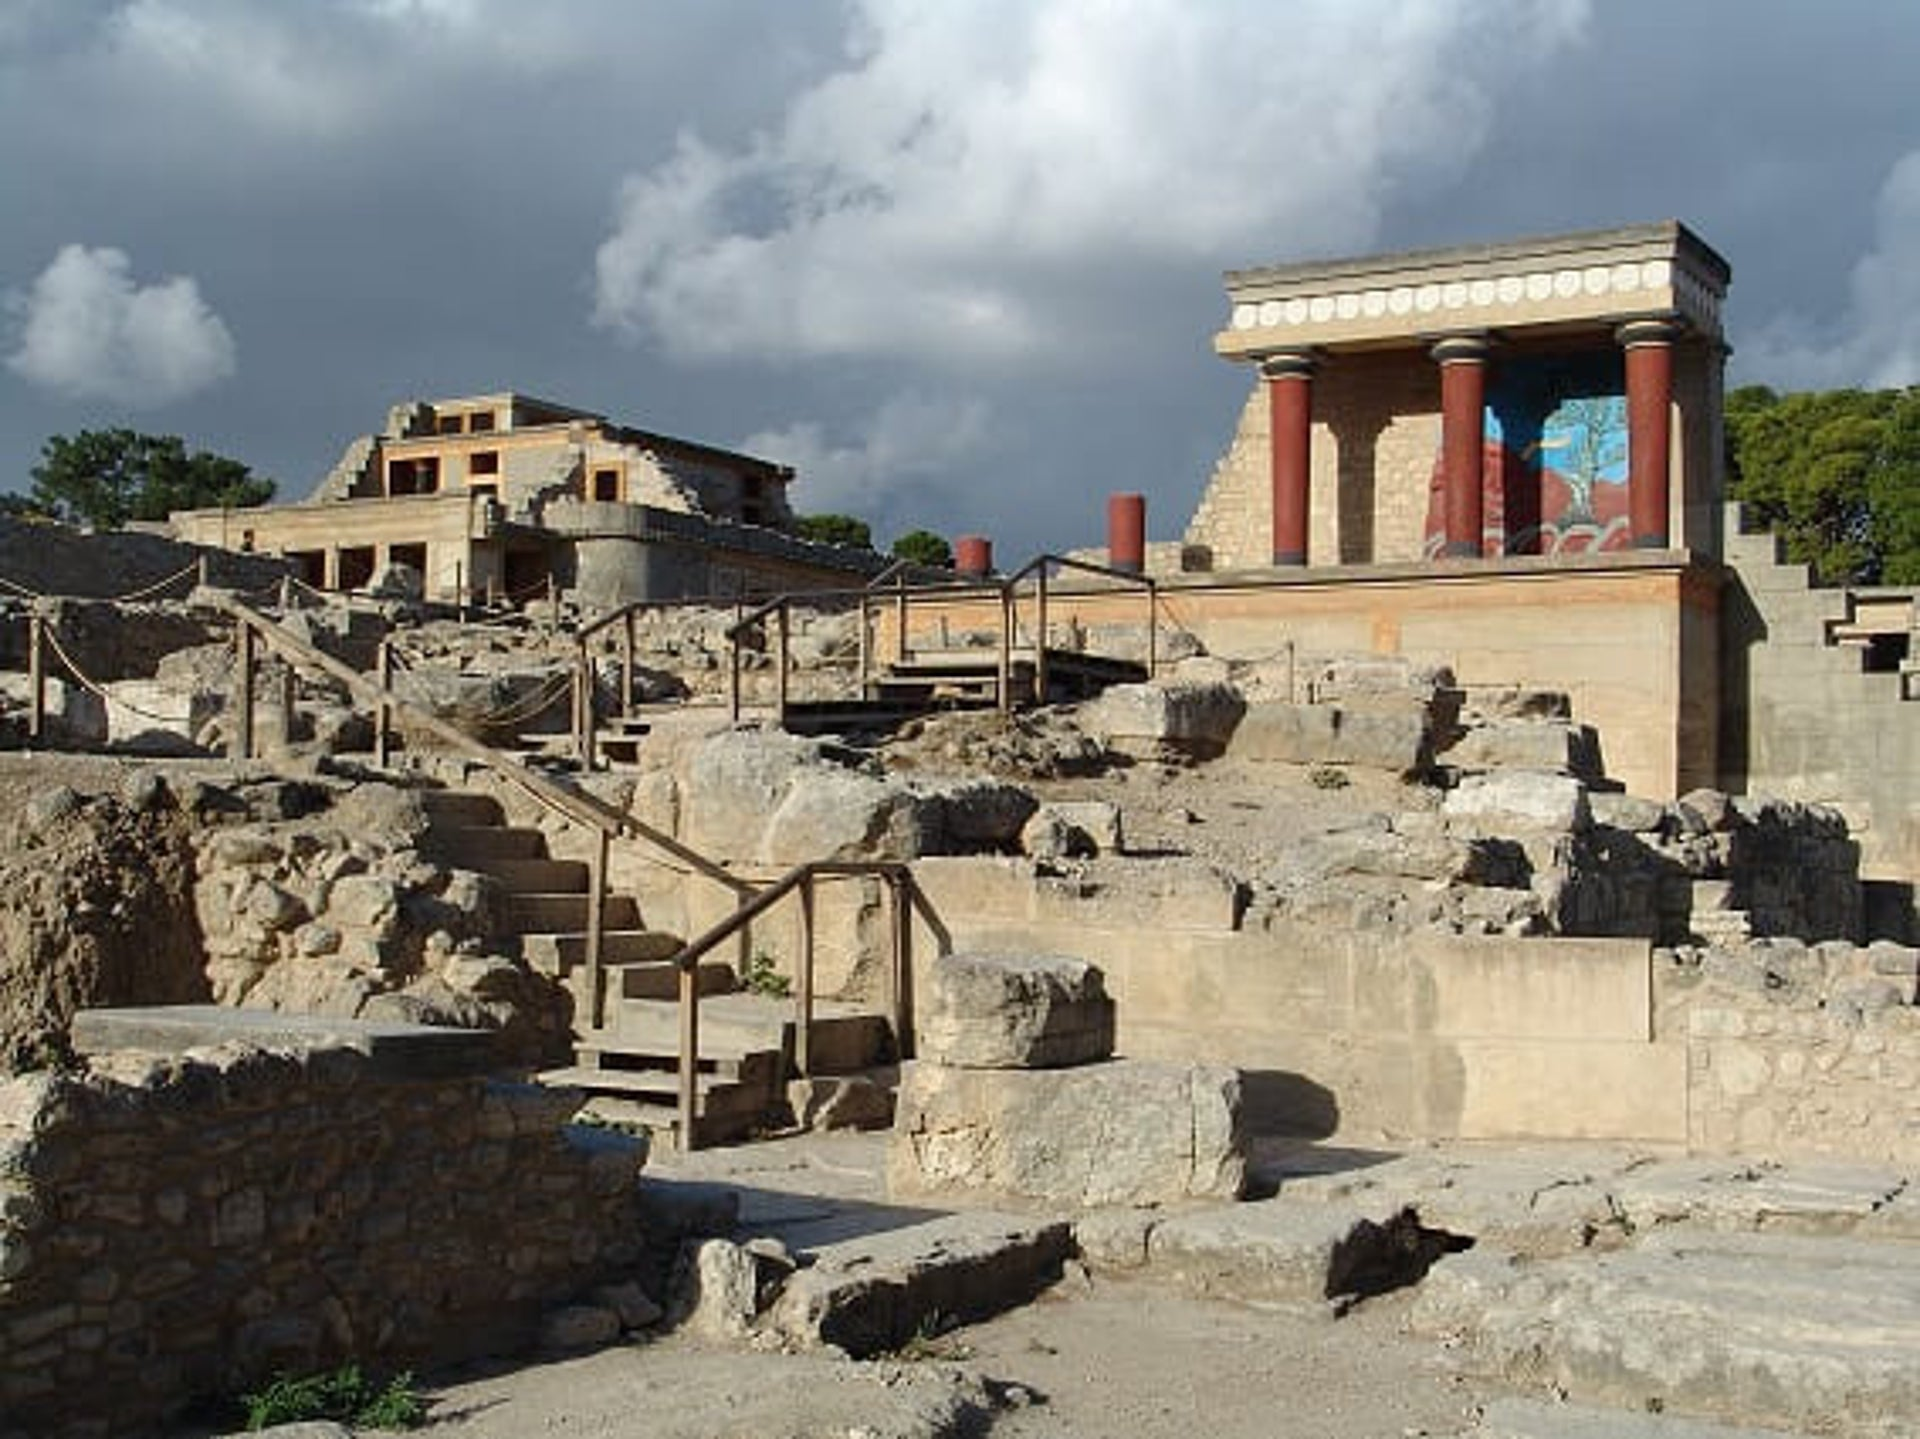 Knossos palace, Crete: The hub of Minoan civilization